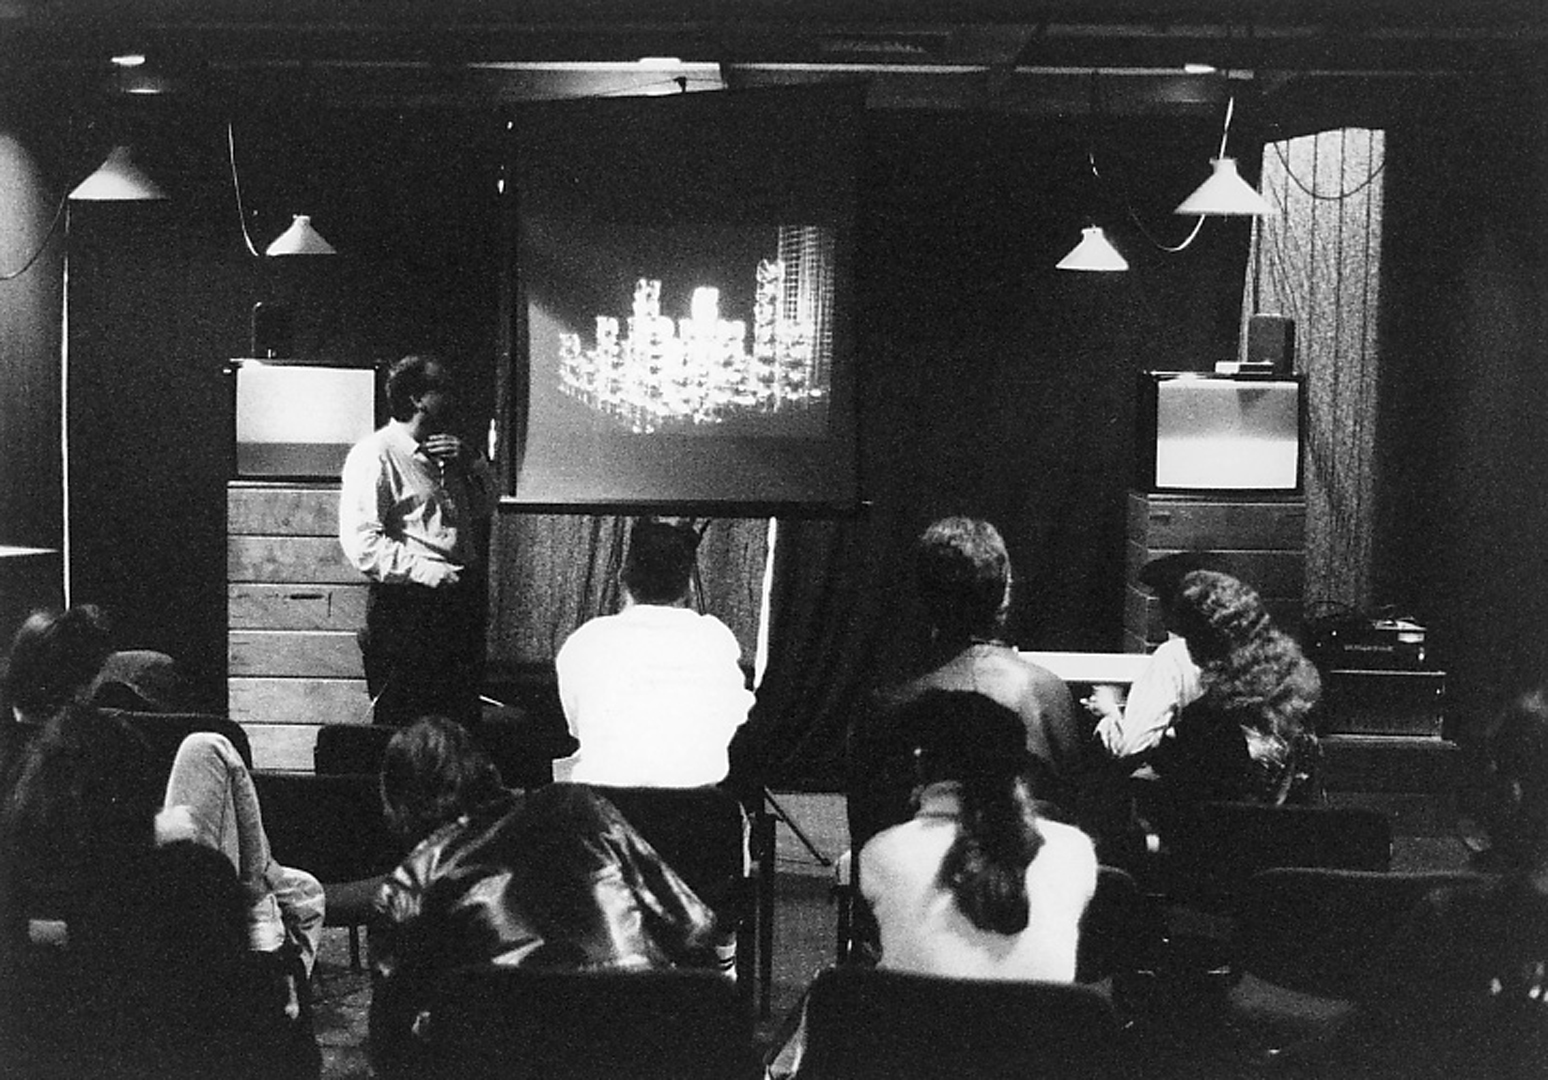 ©SISEA: Second International Symposium on Electronic Art, Tony Robbin, Quasi Crystals for Architecture